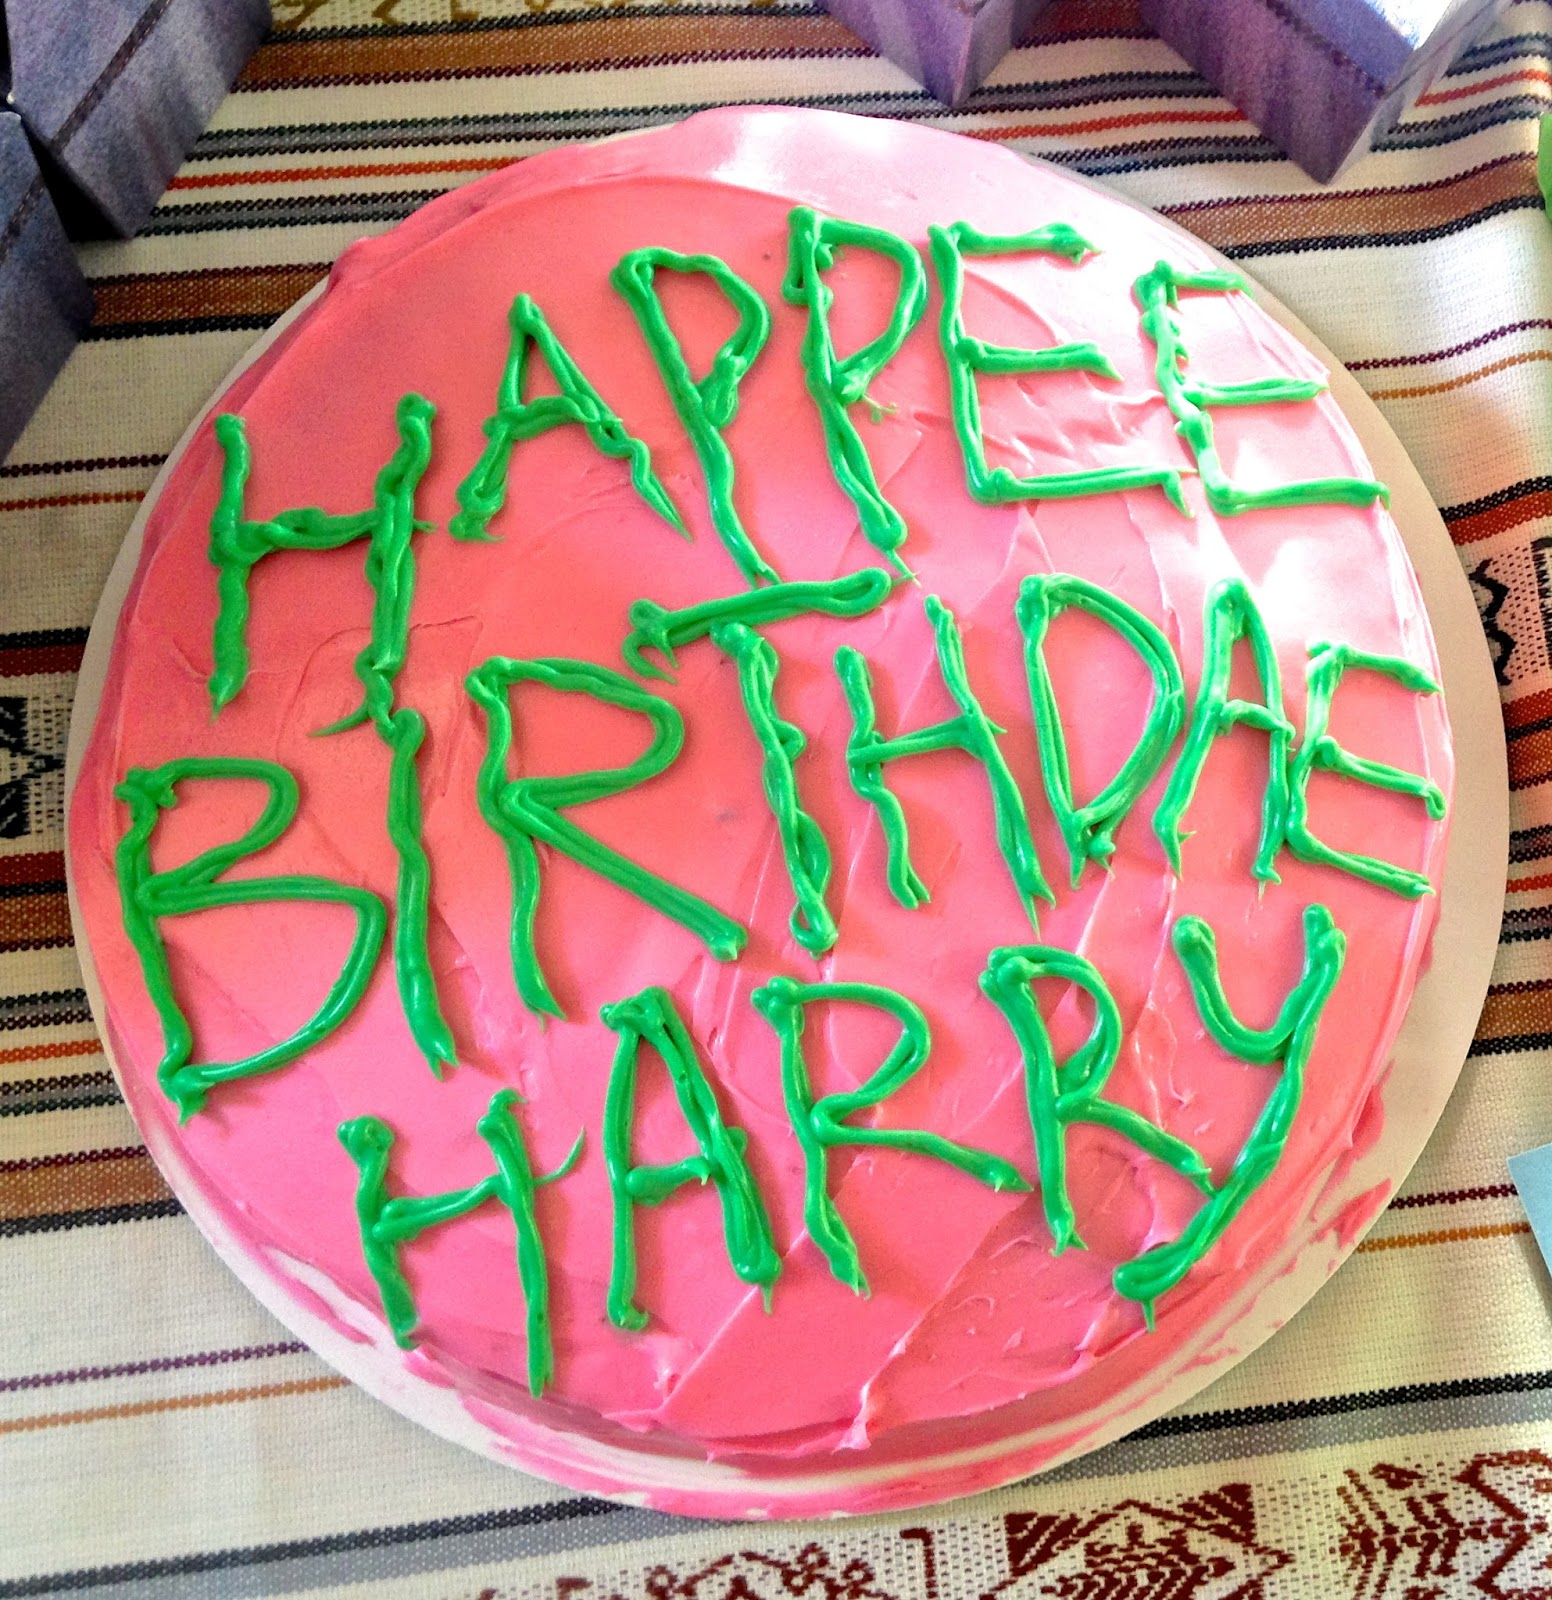 Happy Birthday Harry Potter Cake Bessemsthielens